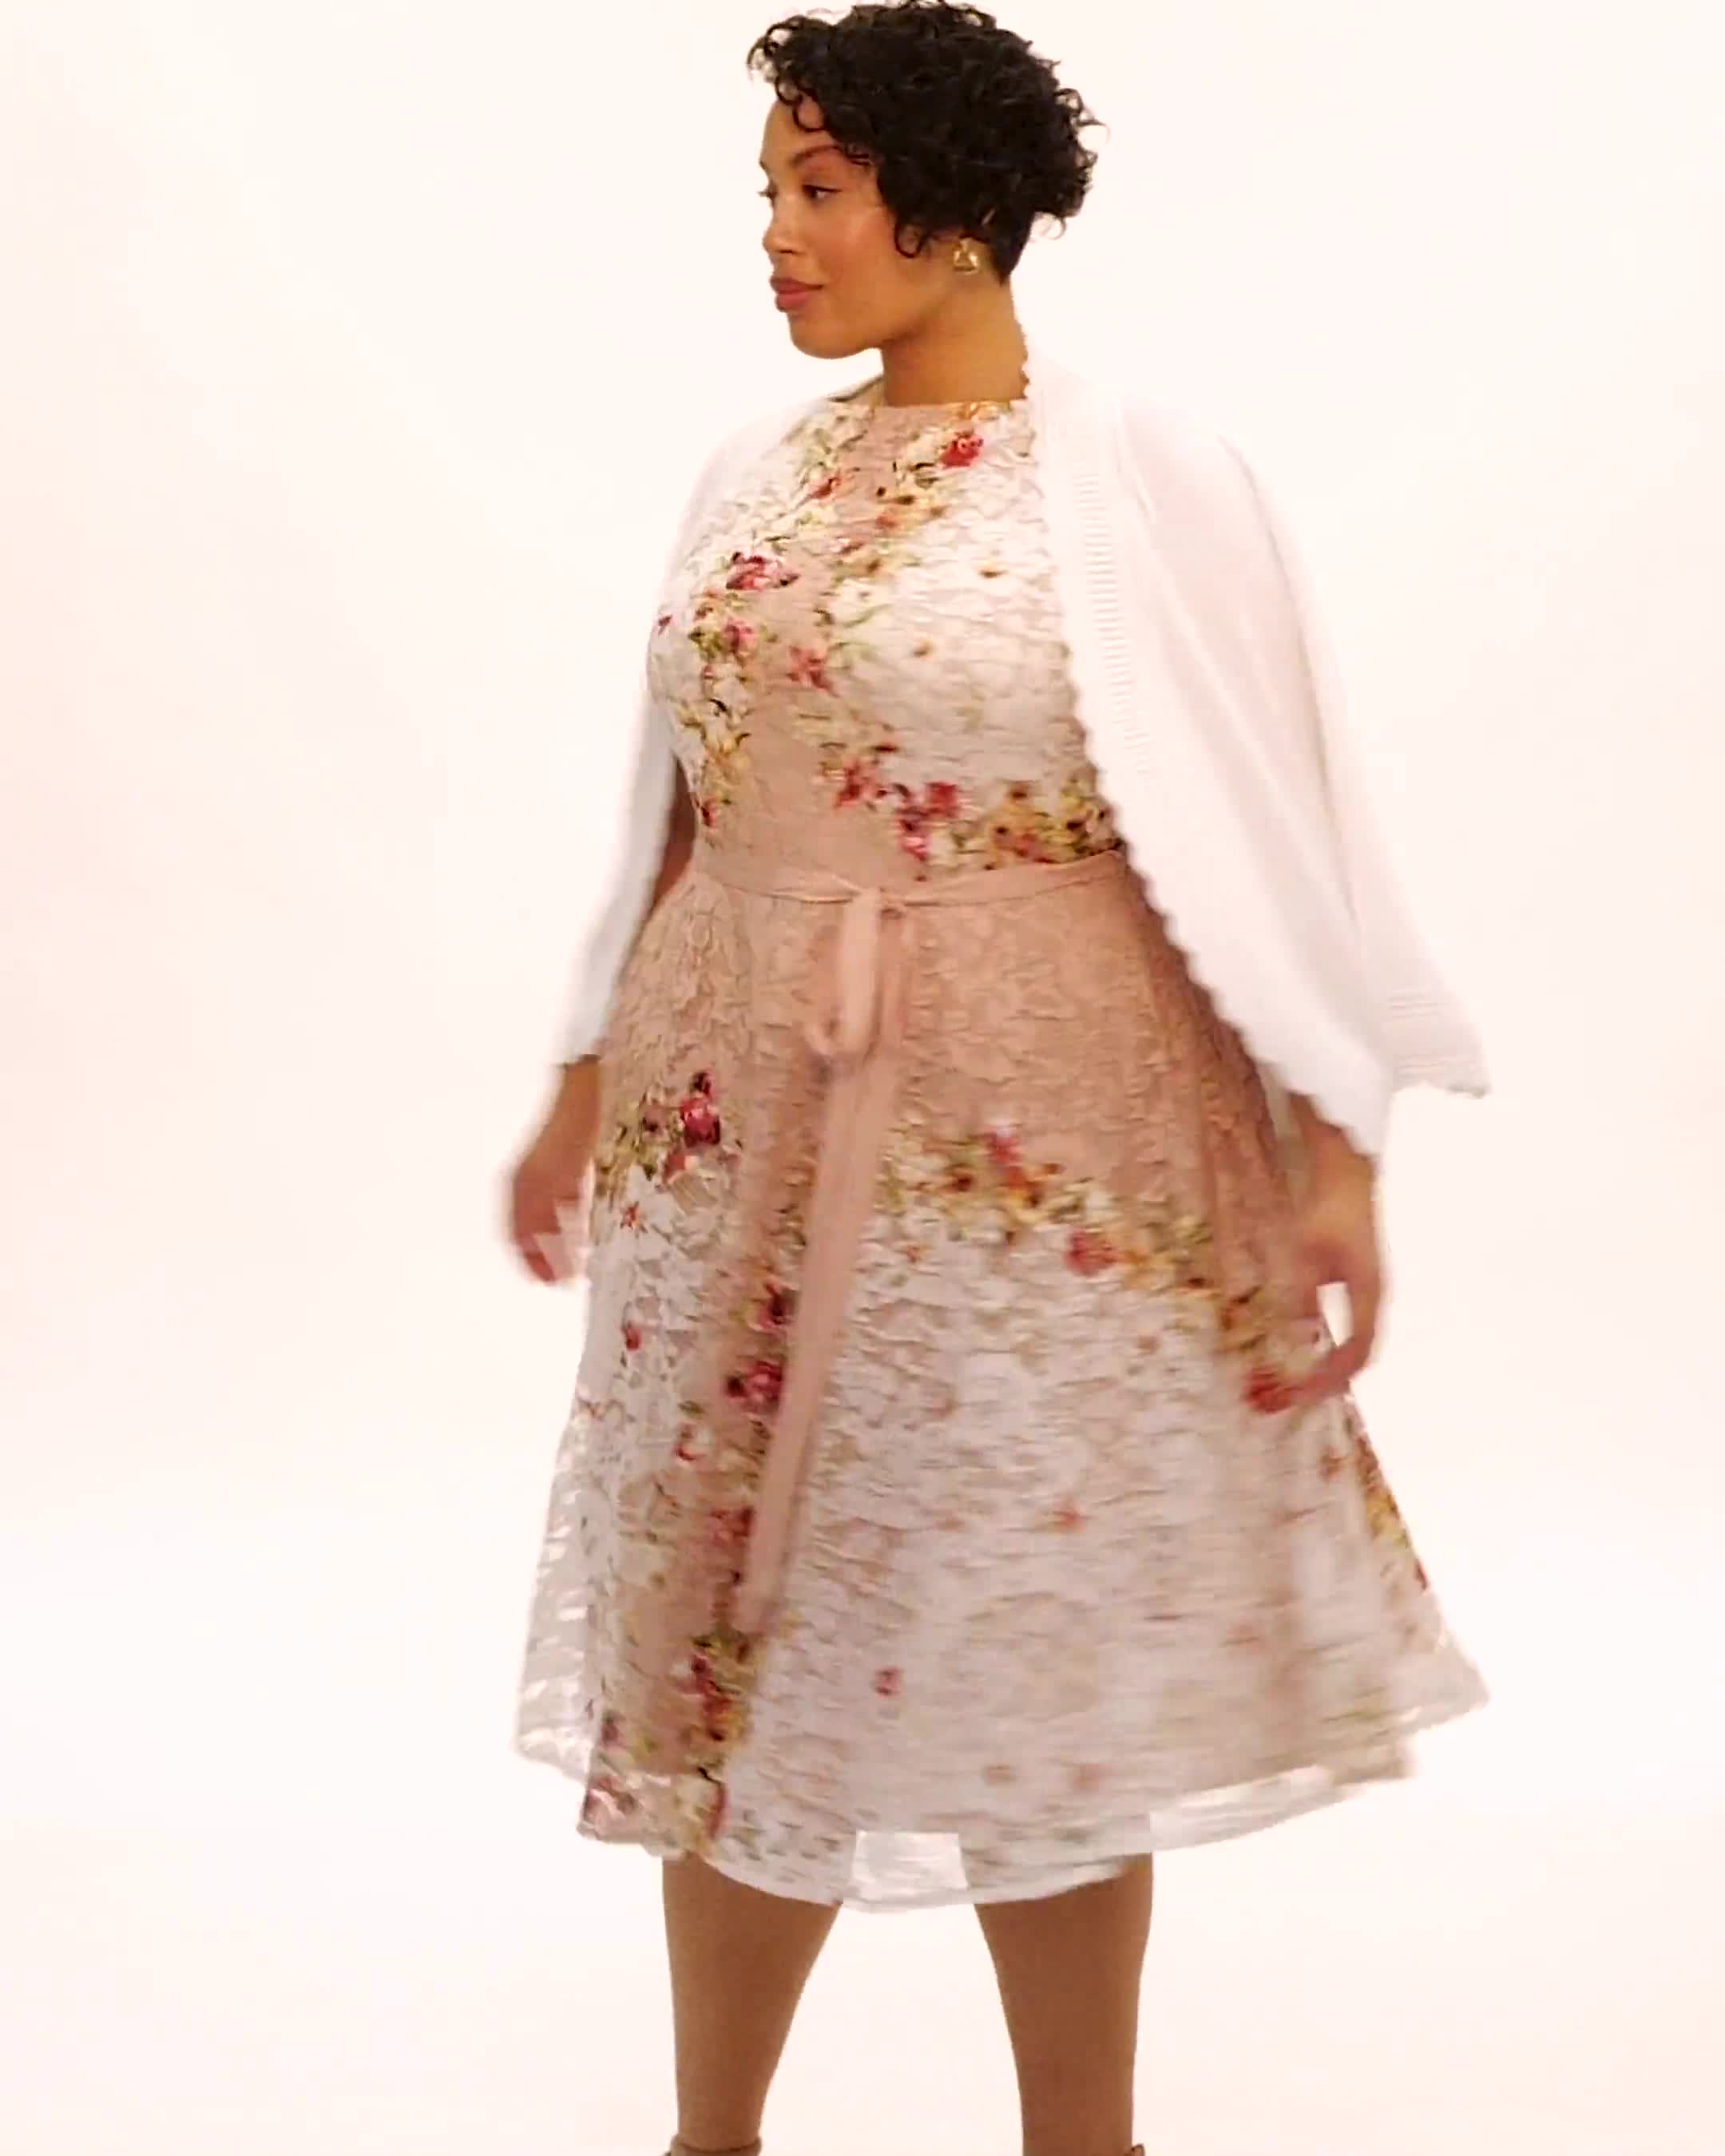 Printed Lace Dress with Grosgrain Ribbon Belt - Video